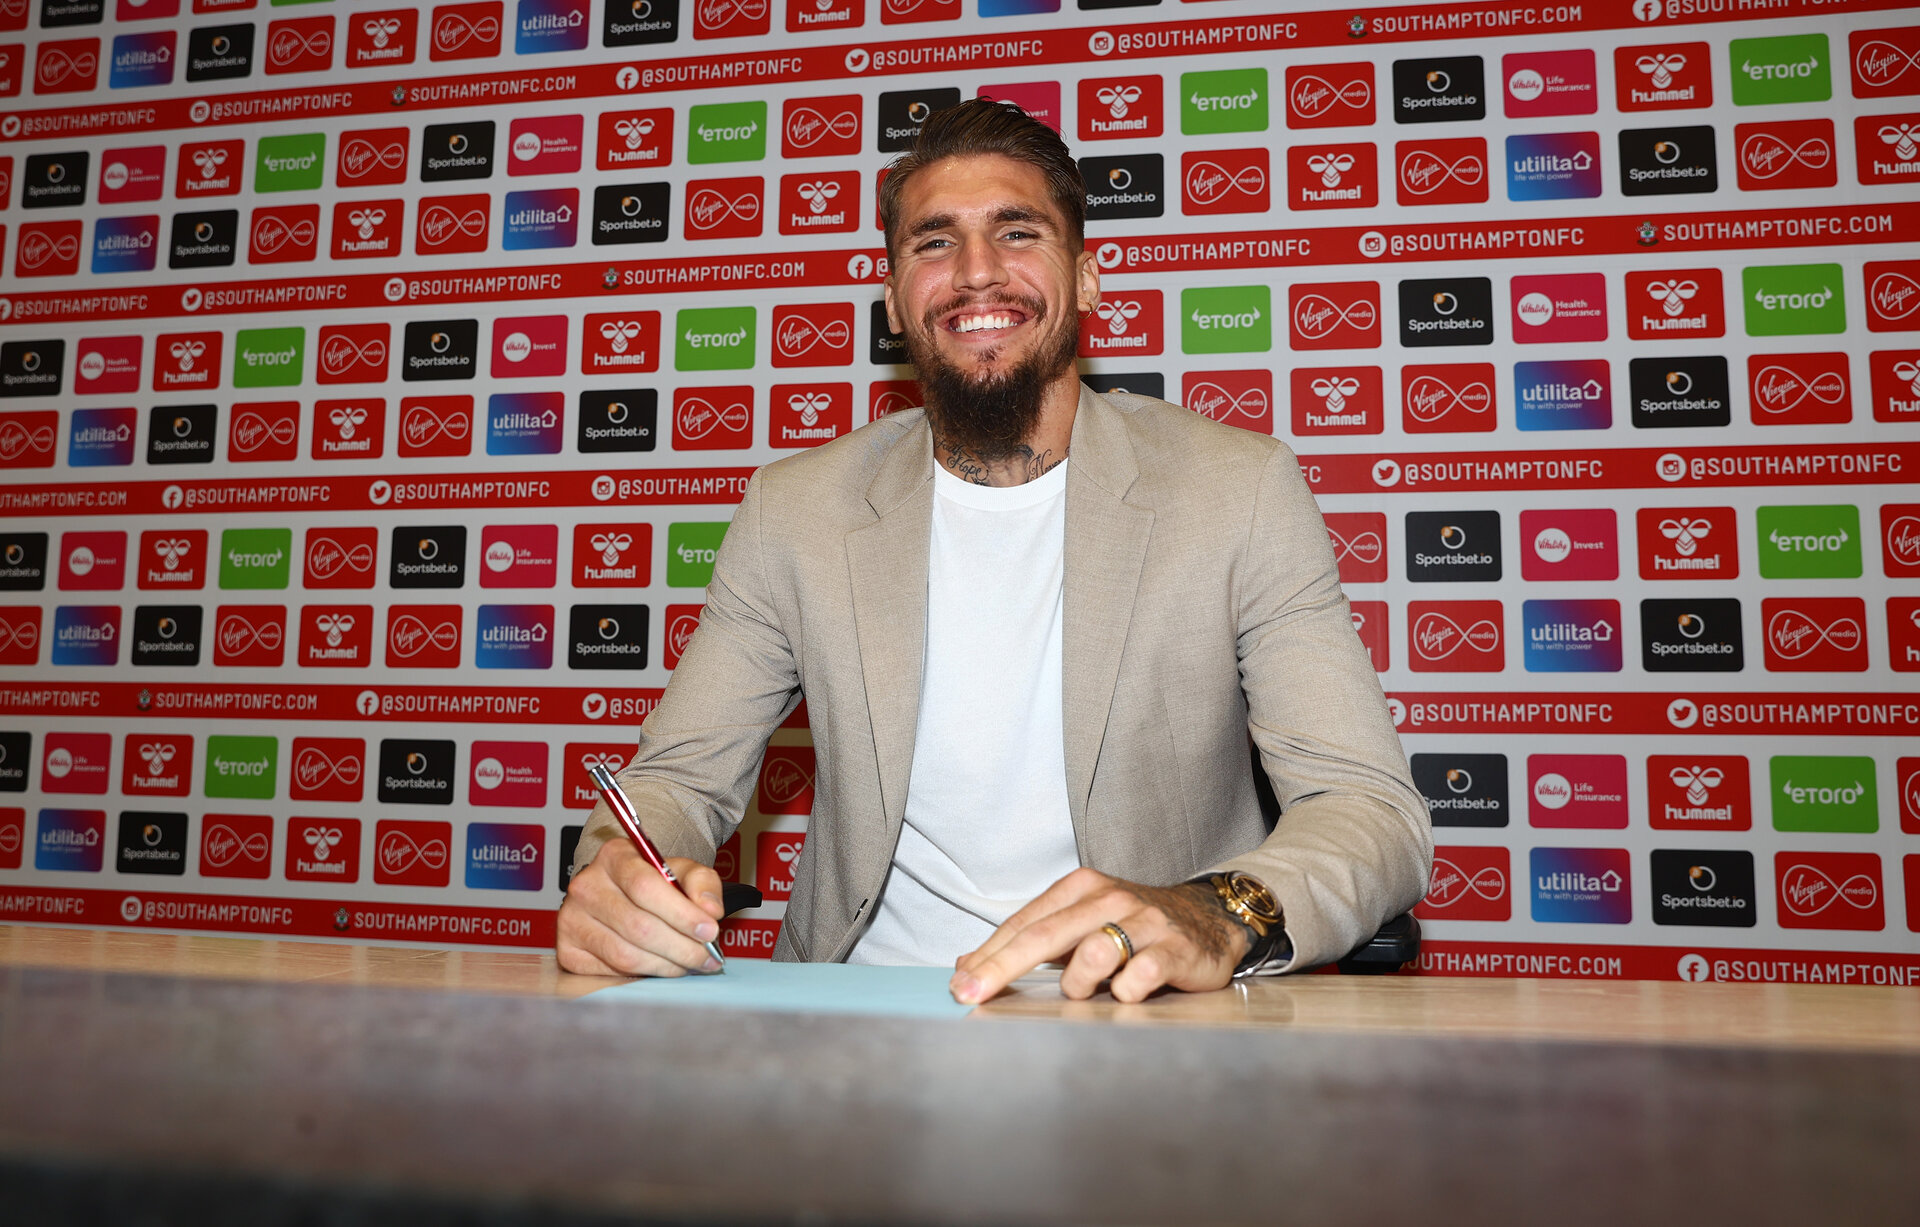 SOUTHAMPTON, ENGLAND - AUGUST 24: Southampton FC sign Lyanco on a permanent deal from Torino, pictured at the Staplewood Campus on August 24, 2021 in Southampton, England. (Photo by Matt Watson/Southampton FC via Getty Images)